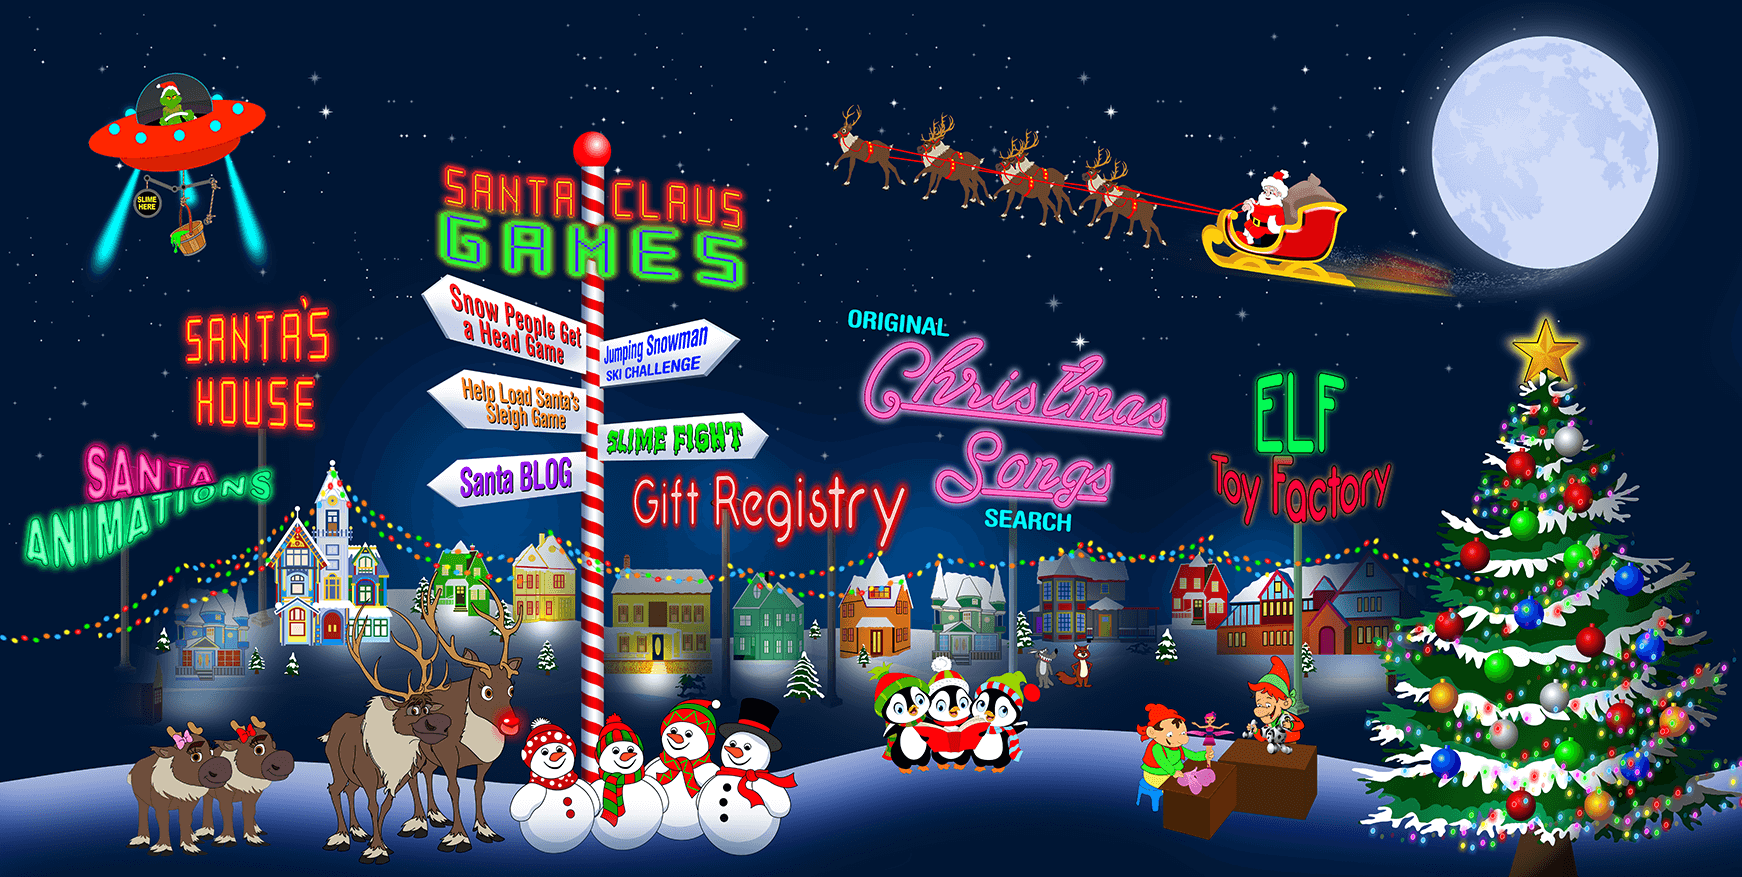 Santa.net: Santa Claus Family Website for kids from 1 to 92!